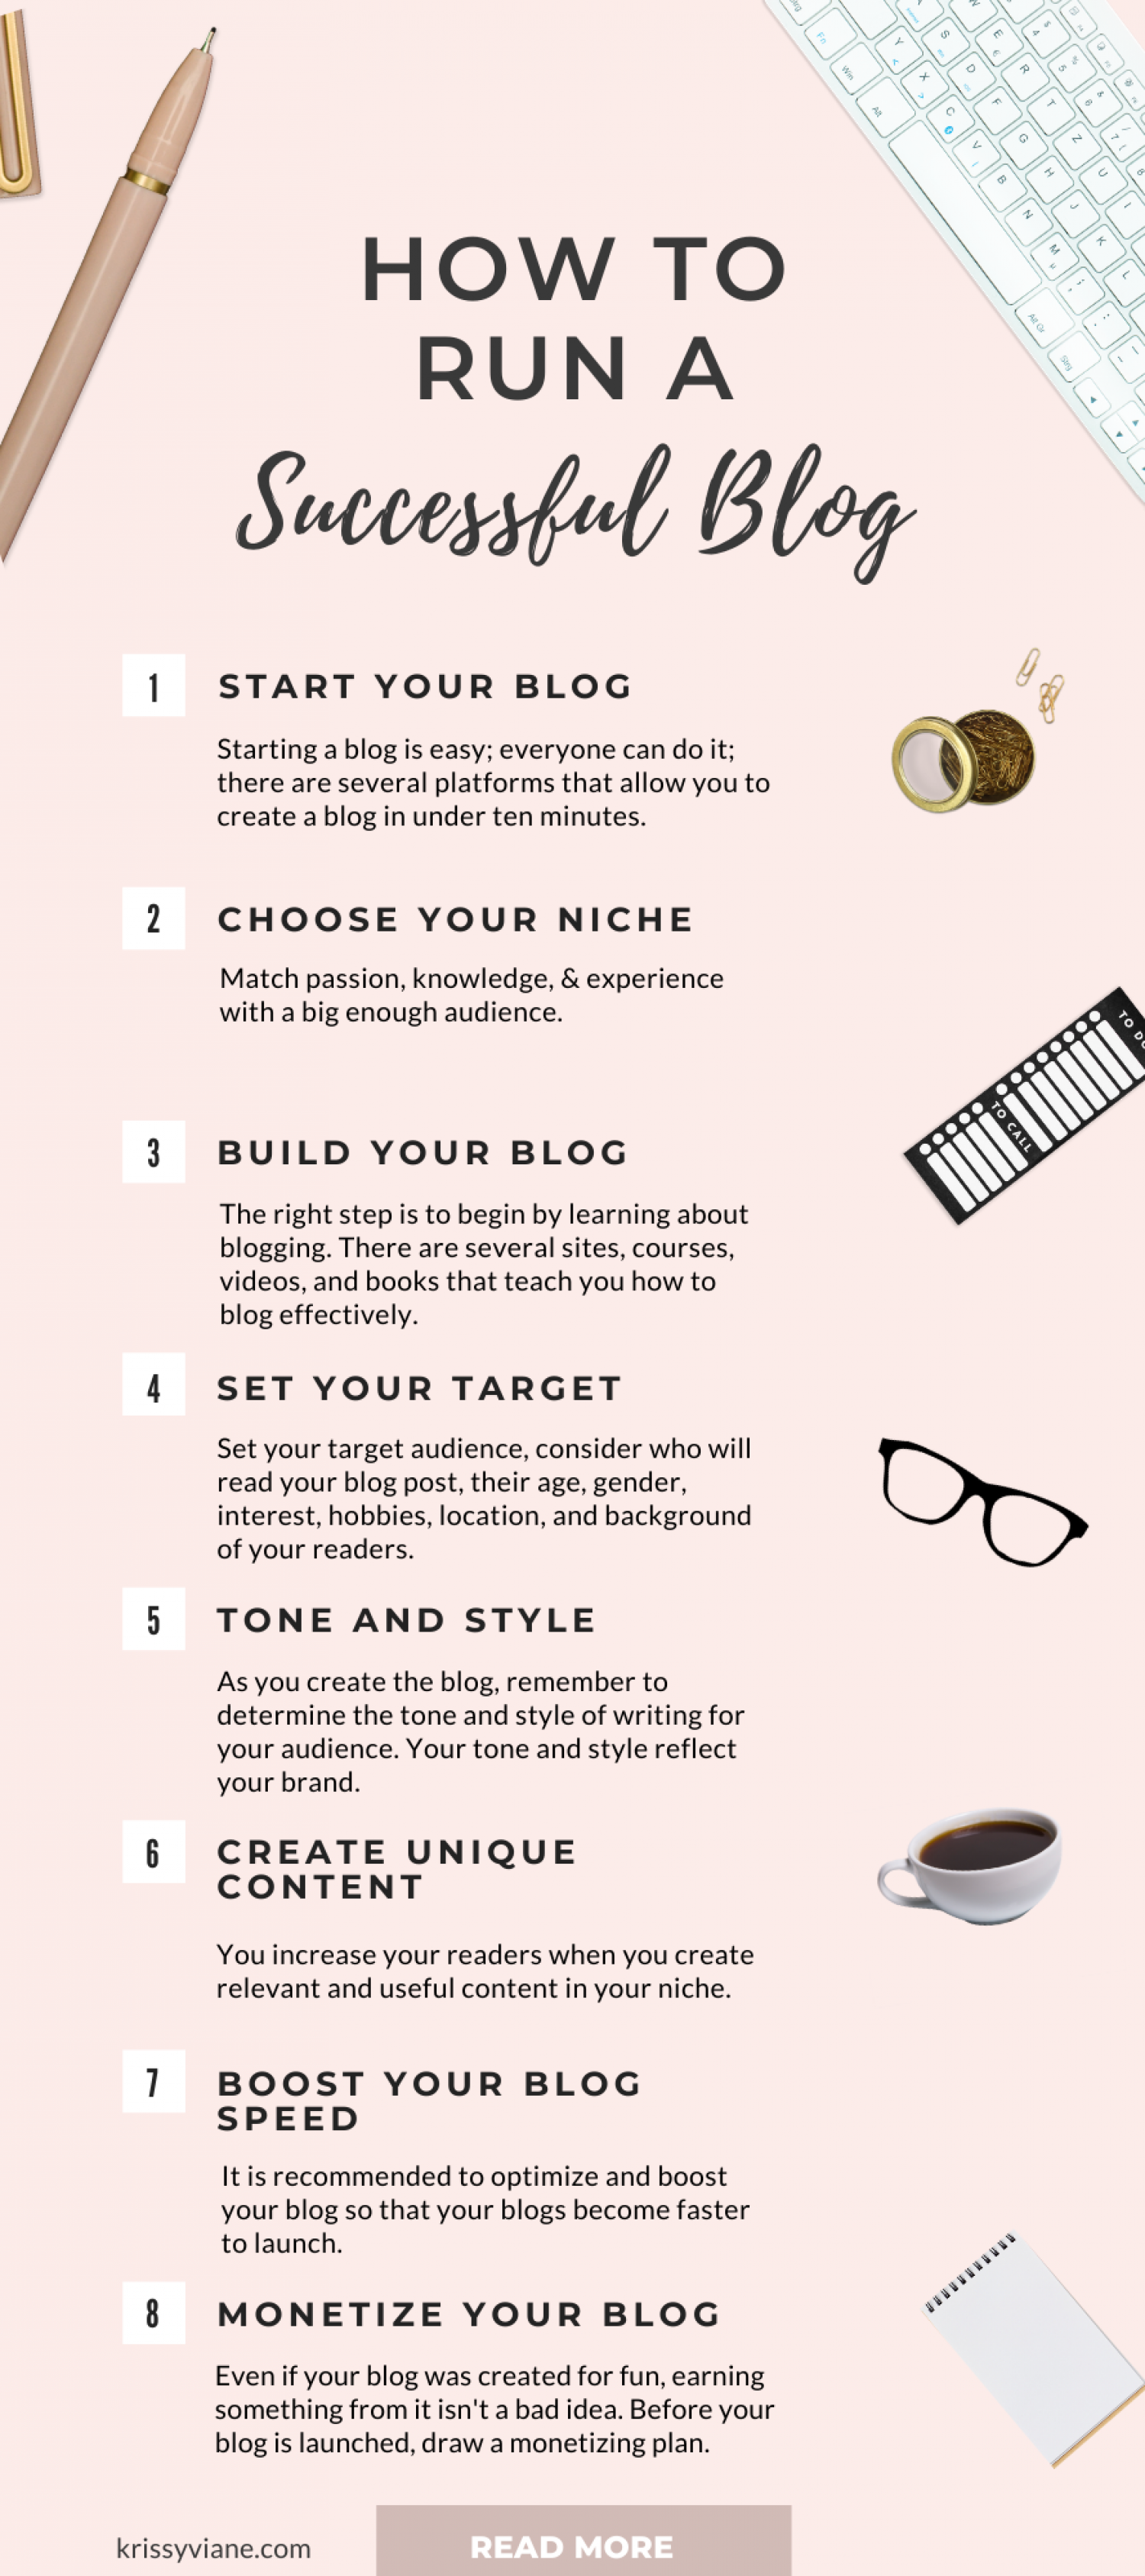 How to run a successful blog for your business Infographic